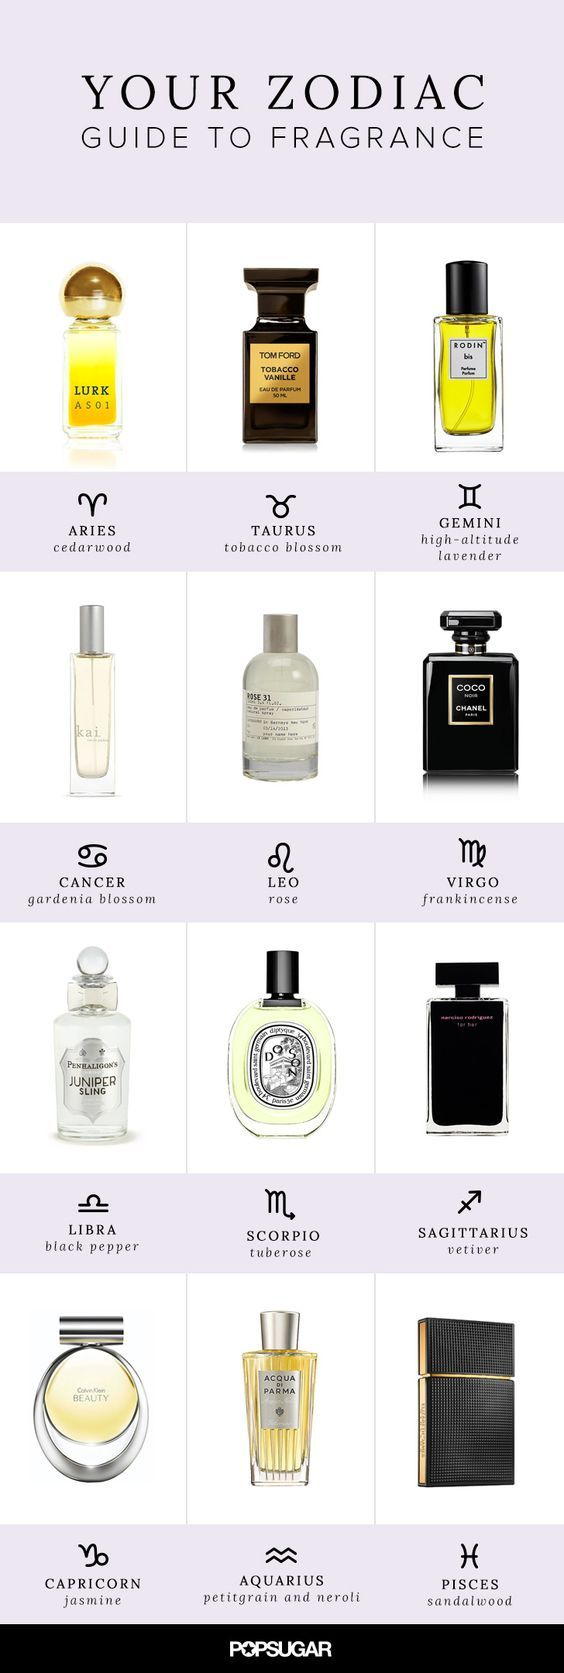 We rely on our horoscope for everything from love advice to hairstyle ideas. You can also link your zodiac sign to your signature scent. All those personality traits from the astrology calendar can lead you to the the right blend of notes for your mood. We enlisted the help of Anne Nelson Sanford, perfumer and founder of LURKbeauty, to determine which perfume ingredients best fit each sign.